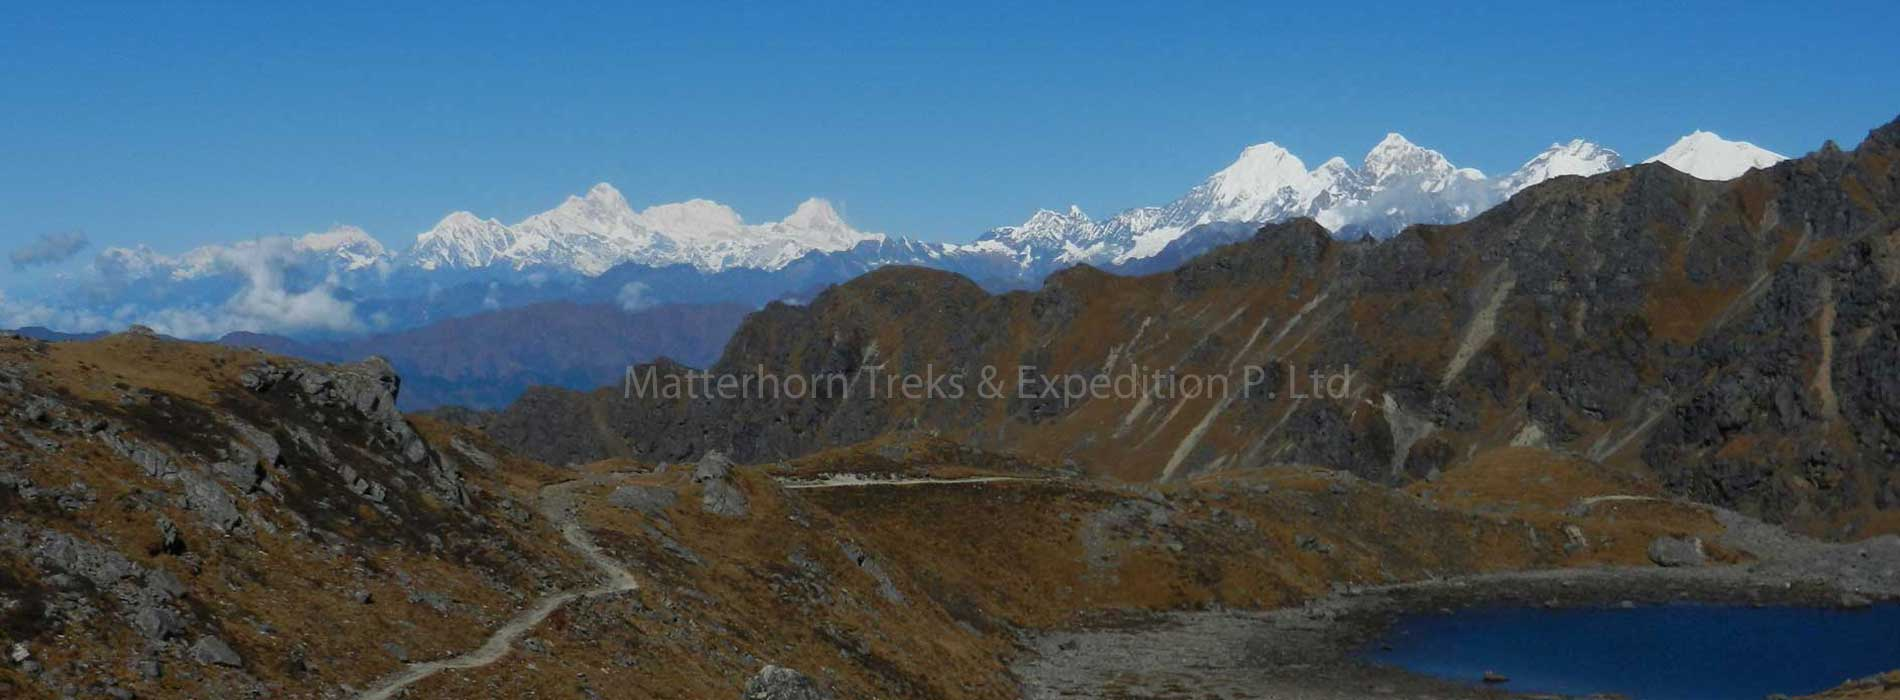 Matterhorn Treks & Expedition P. Ltd